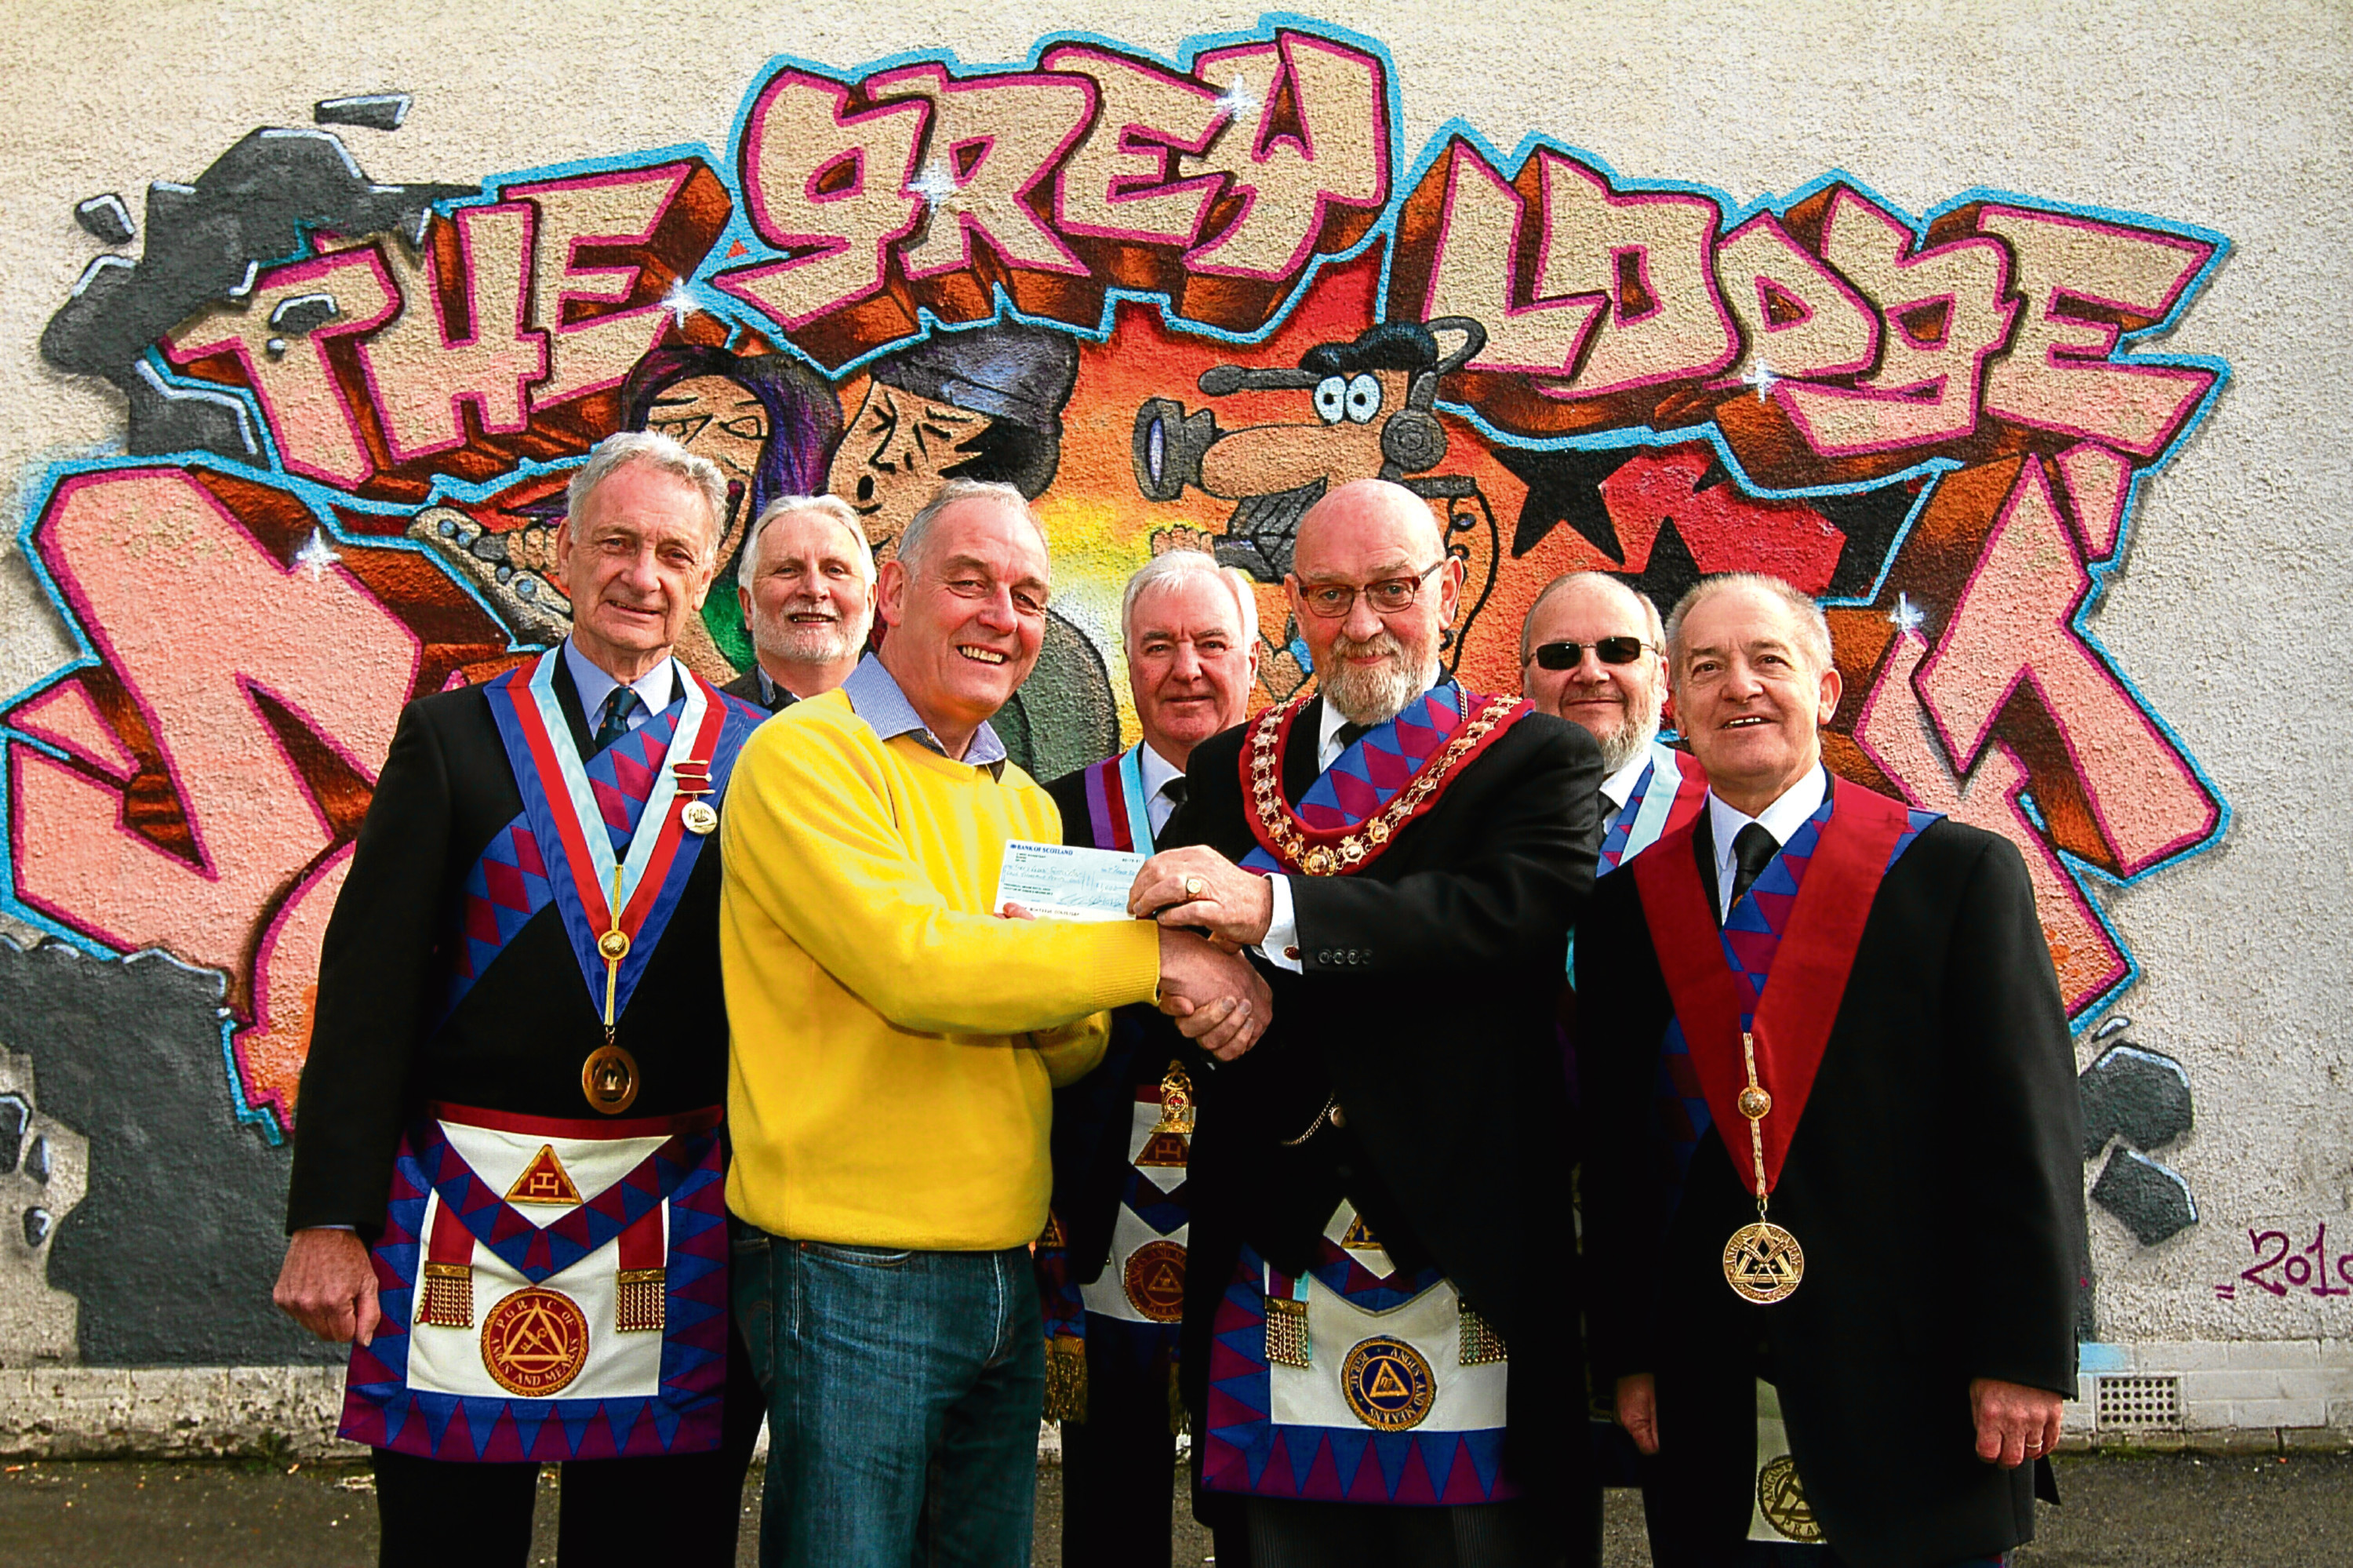 Manager of Grey Lodge, Alan Duncan, (yellow jumper) accepts cheque from Gordon Ross, watched by Andy Stewart, Iain Glass (chairman, Grey Lodge), Eddie Bonnar, Bill Beckers and George Milne (all of Grand Royal Arch Chapter)